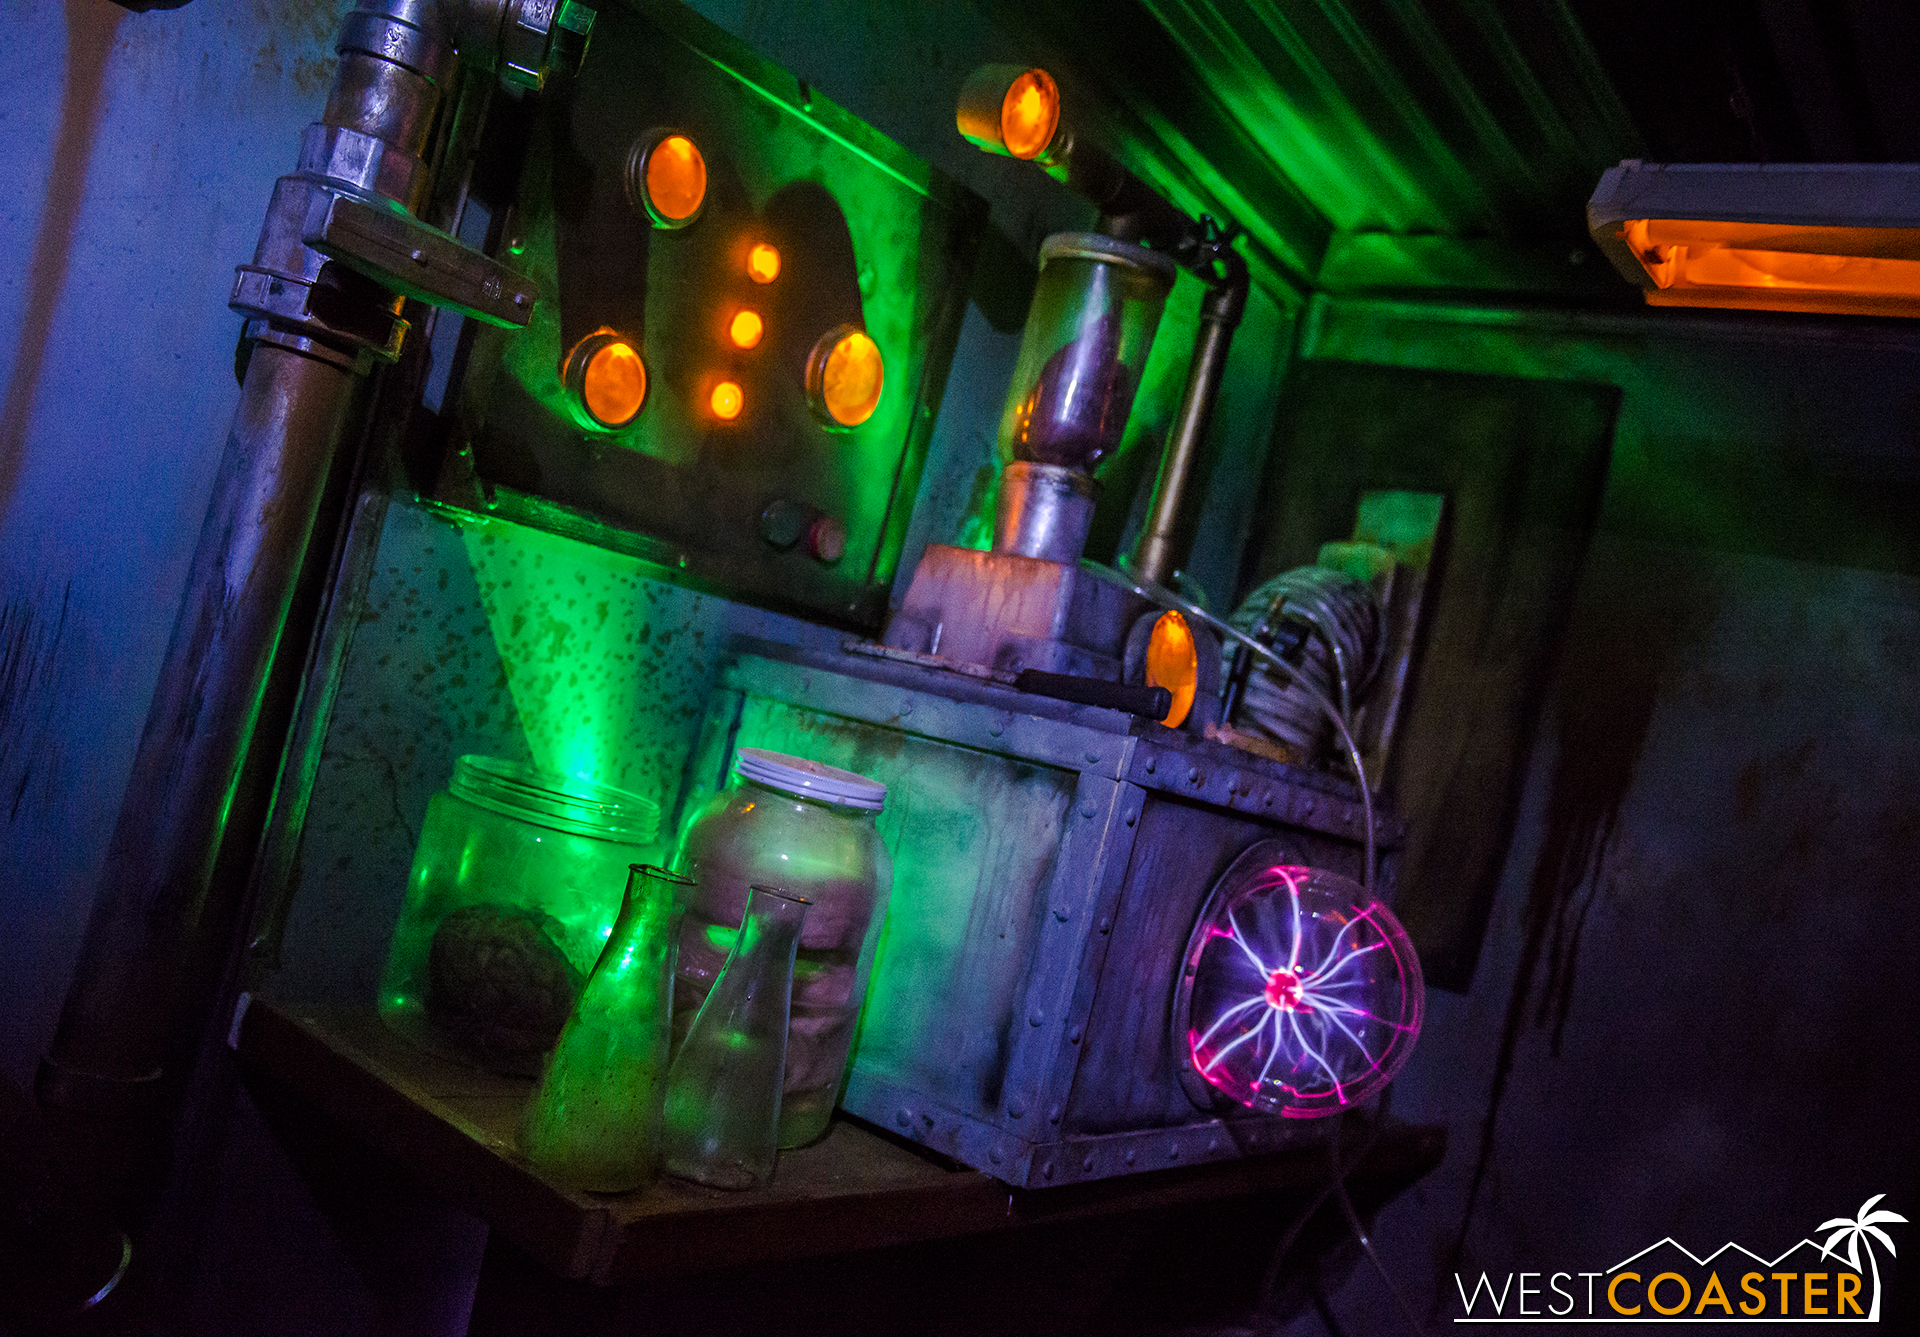 Dead Zone 805 offered a sneak peak at their mobile escape room at Midsummer Scream.